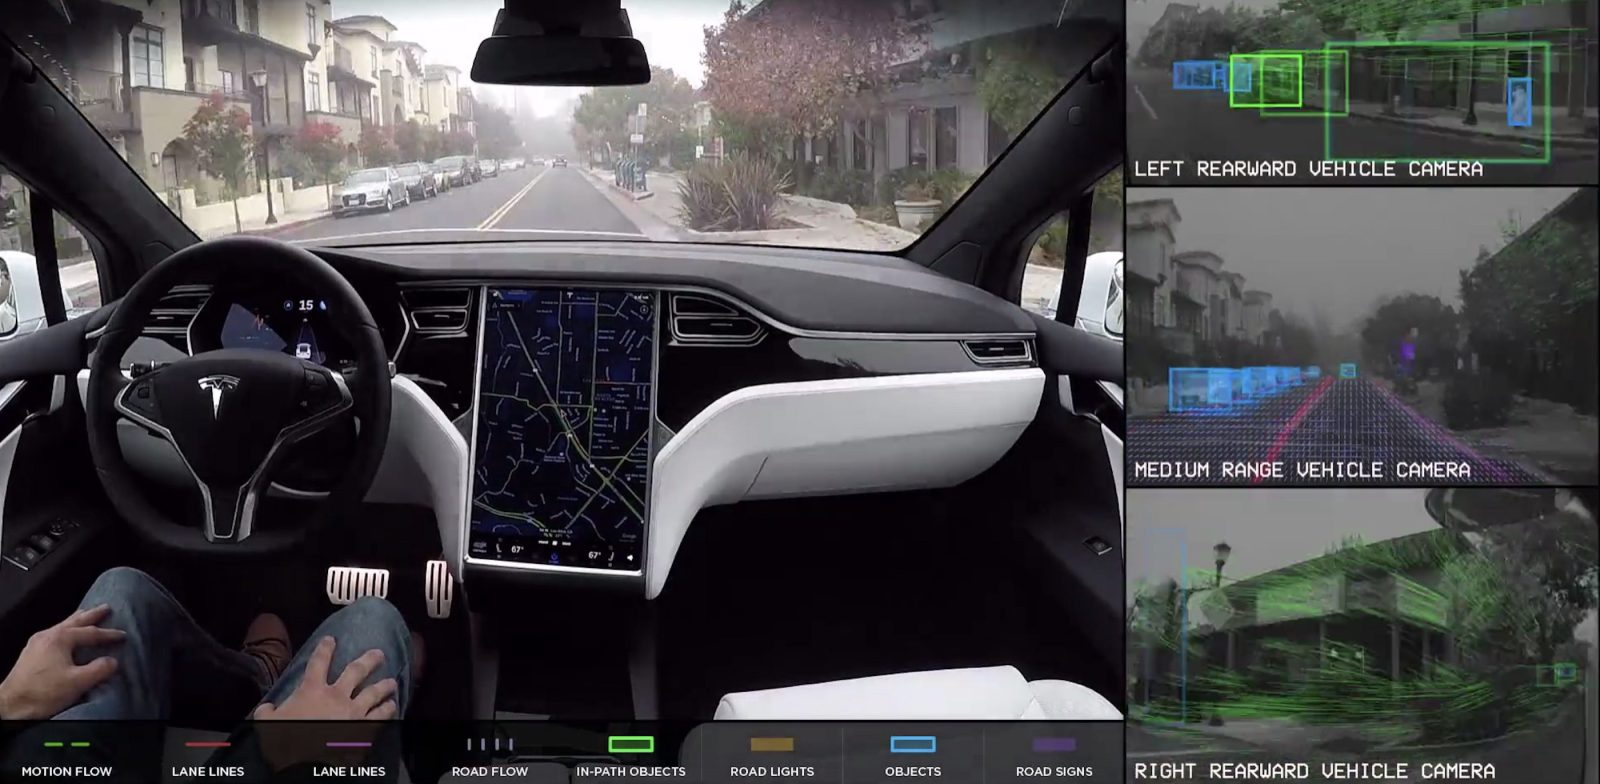 hight resolution of tesla leaks info about new self driving computer in latest software update